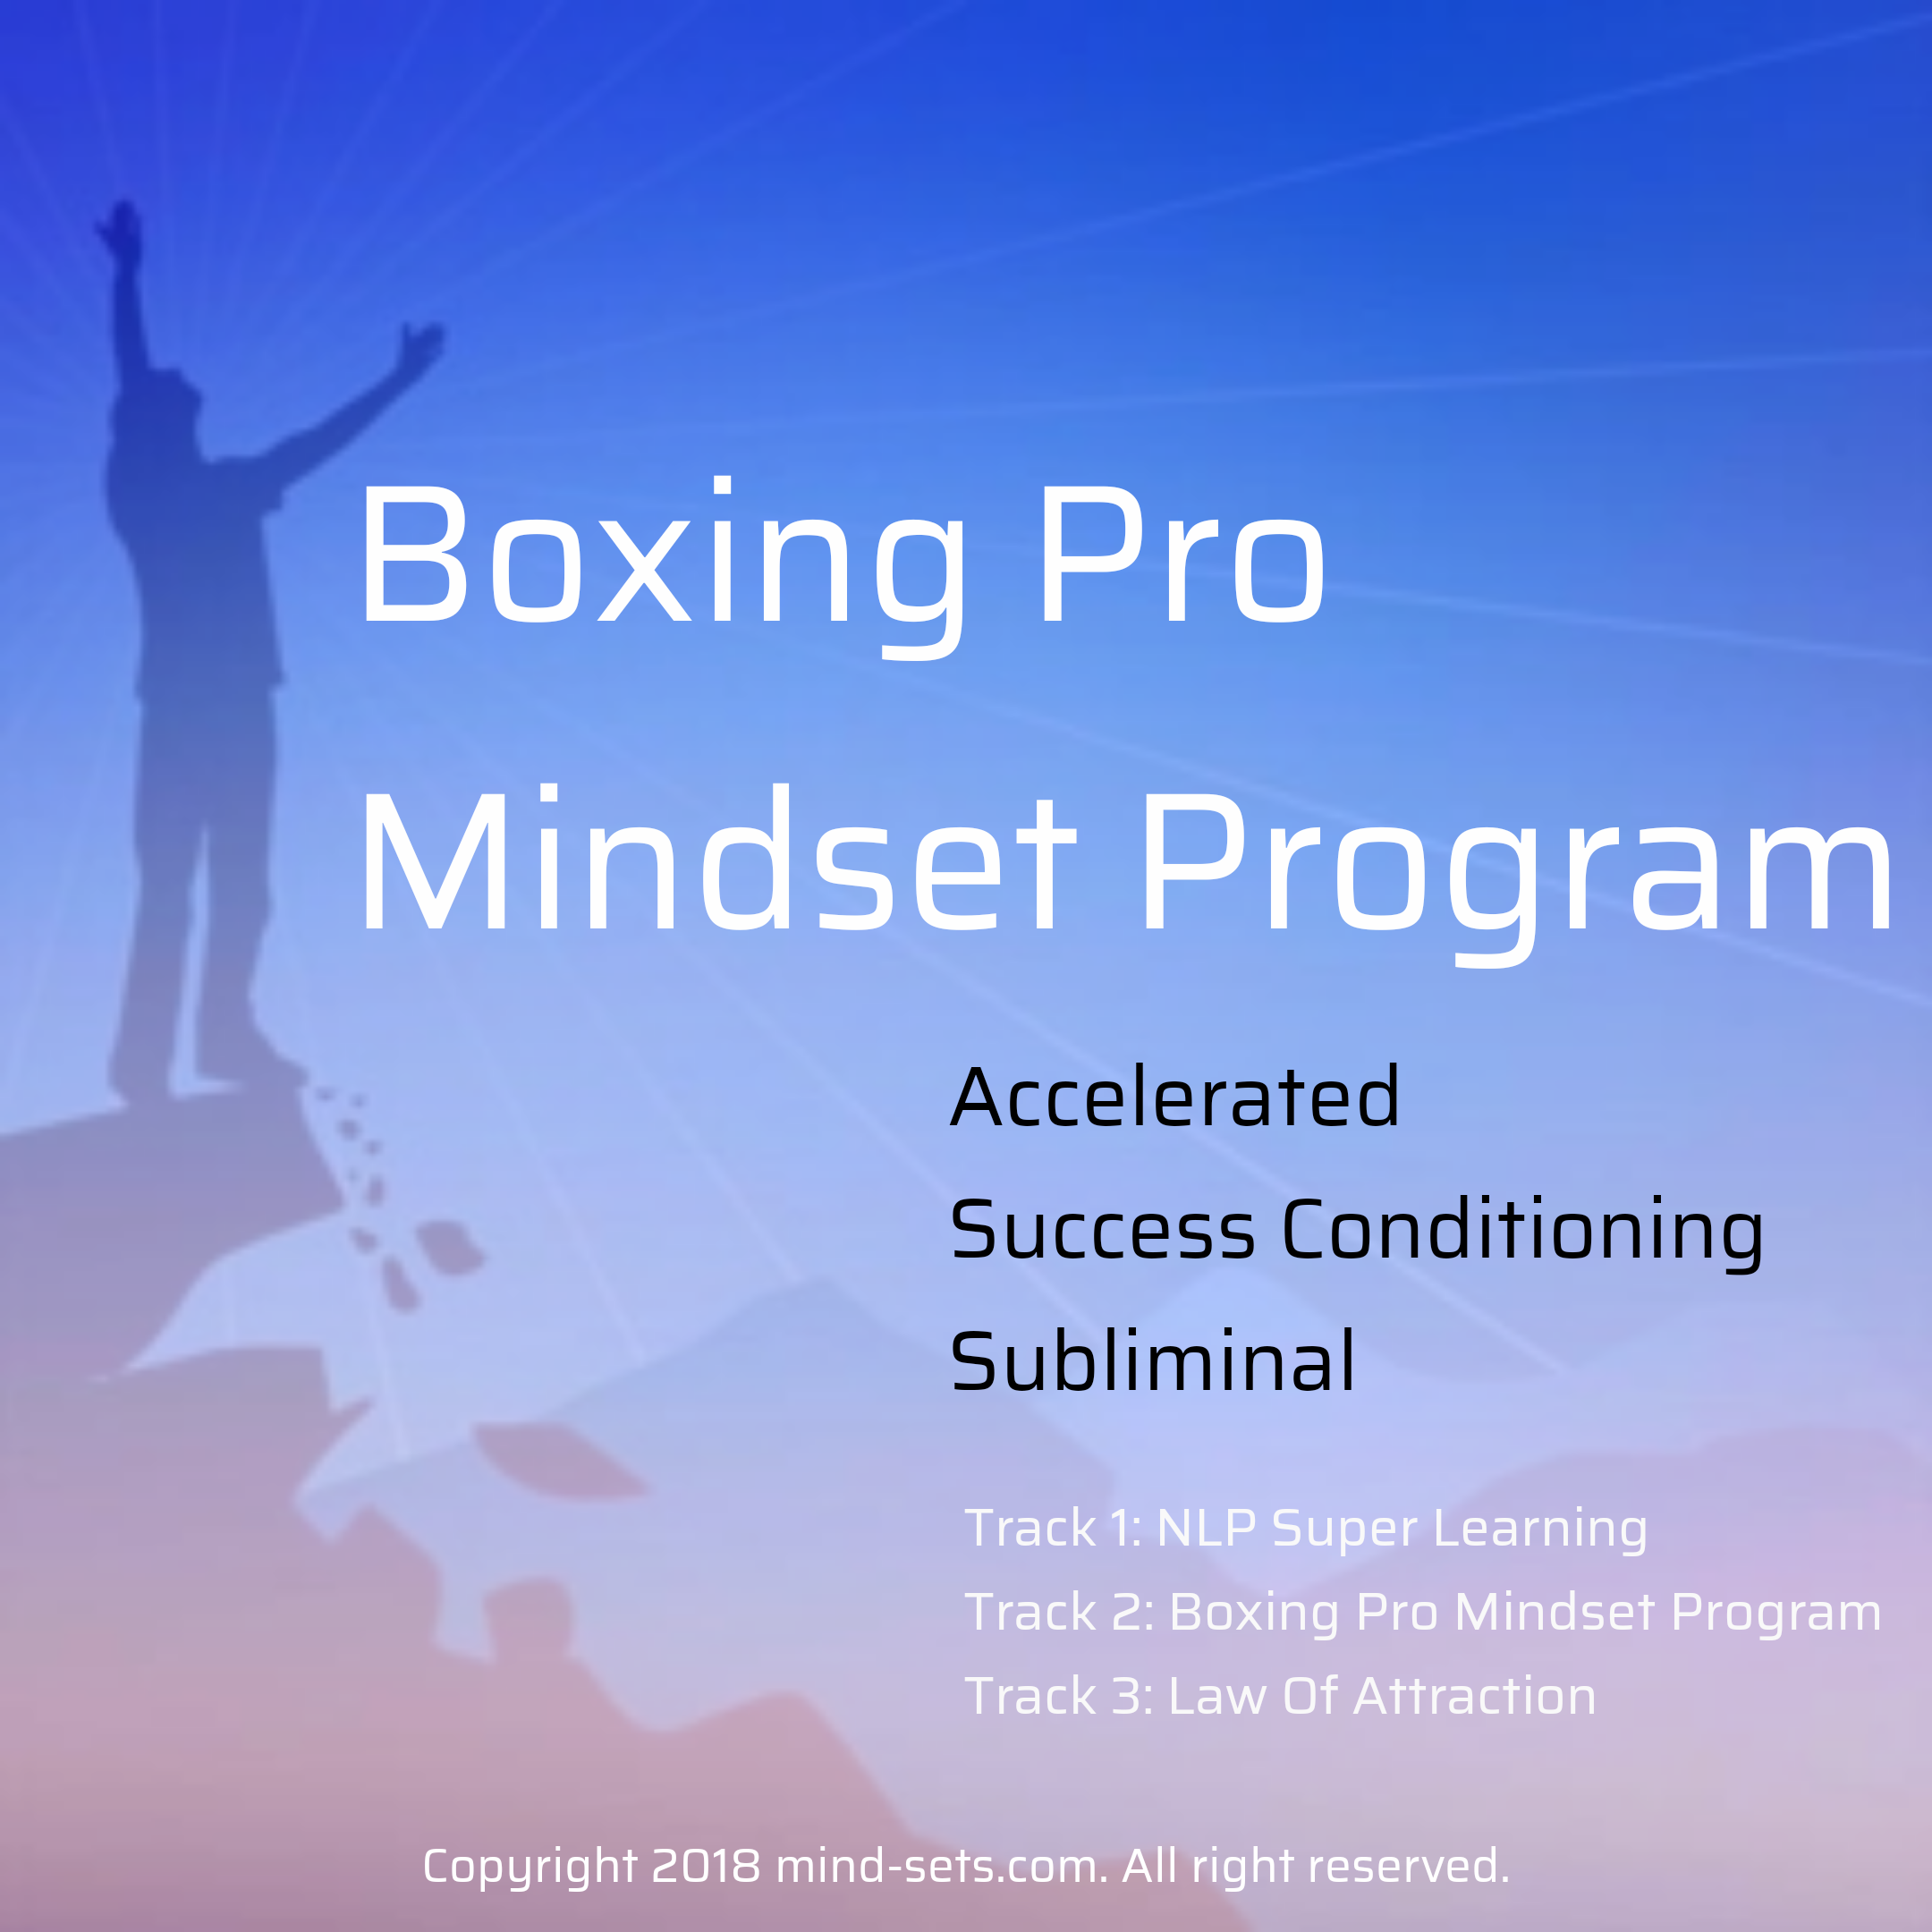 Boxing Pro Mindset Program